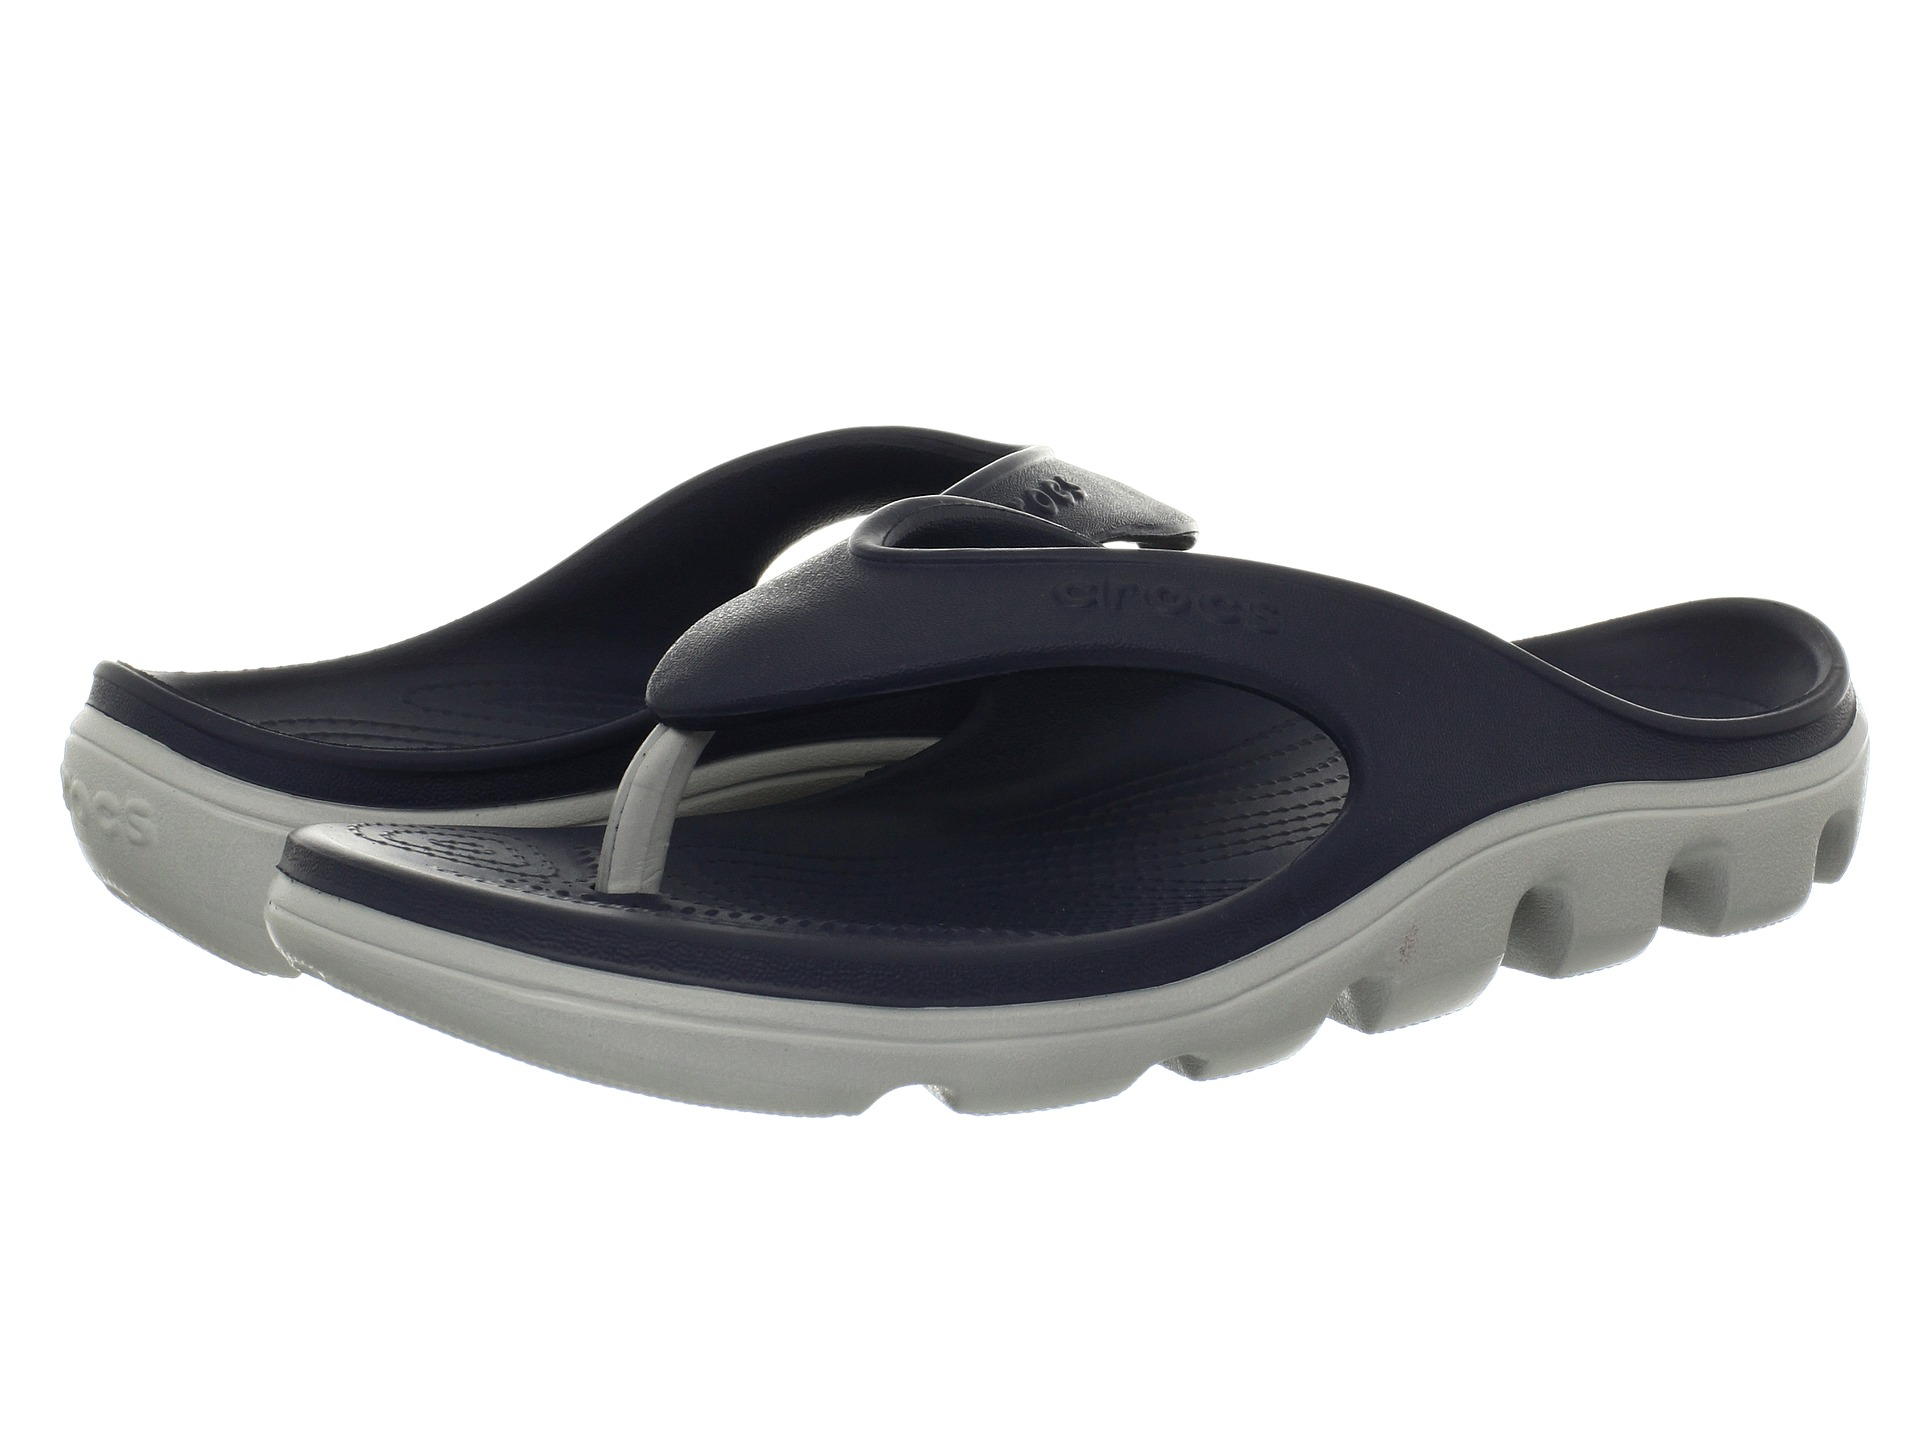 crocs duet sport flip flop shipped free at zappos. Black Bedroom Furniture Sets. Home Design Ideas